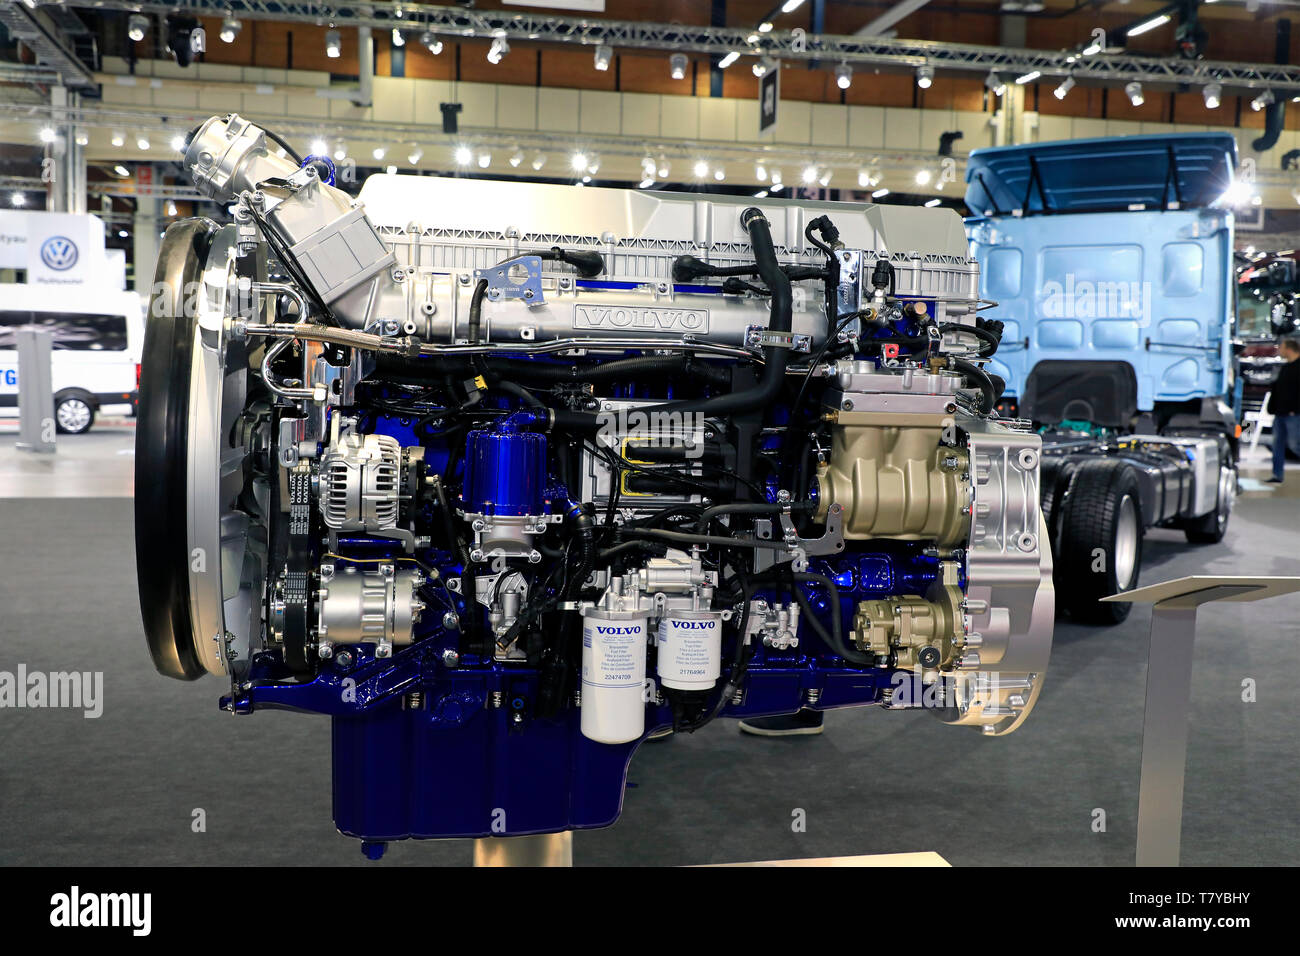 Helsinki, Finland. 09 May, 2019. Volvo D13TC I-Save Engine displayed on Volvo Trucks Stand on Transport-Logistics 2019. According to Volvo Trucks, New Volvo FH with I-Save cuts fuel costs by up to 7%. Credit: Taina Sohlman/agefotostock - Stock Image